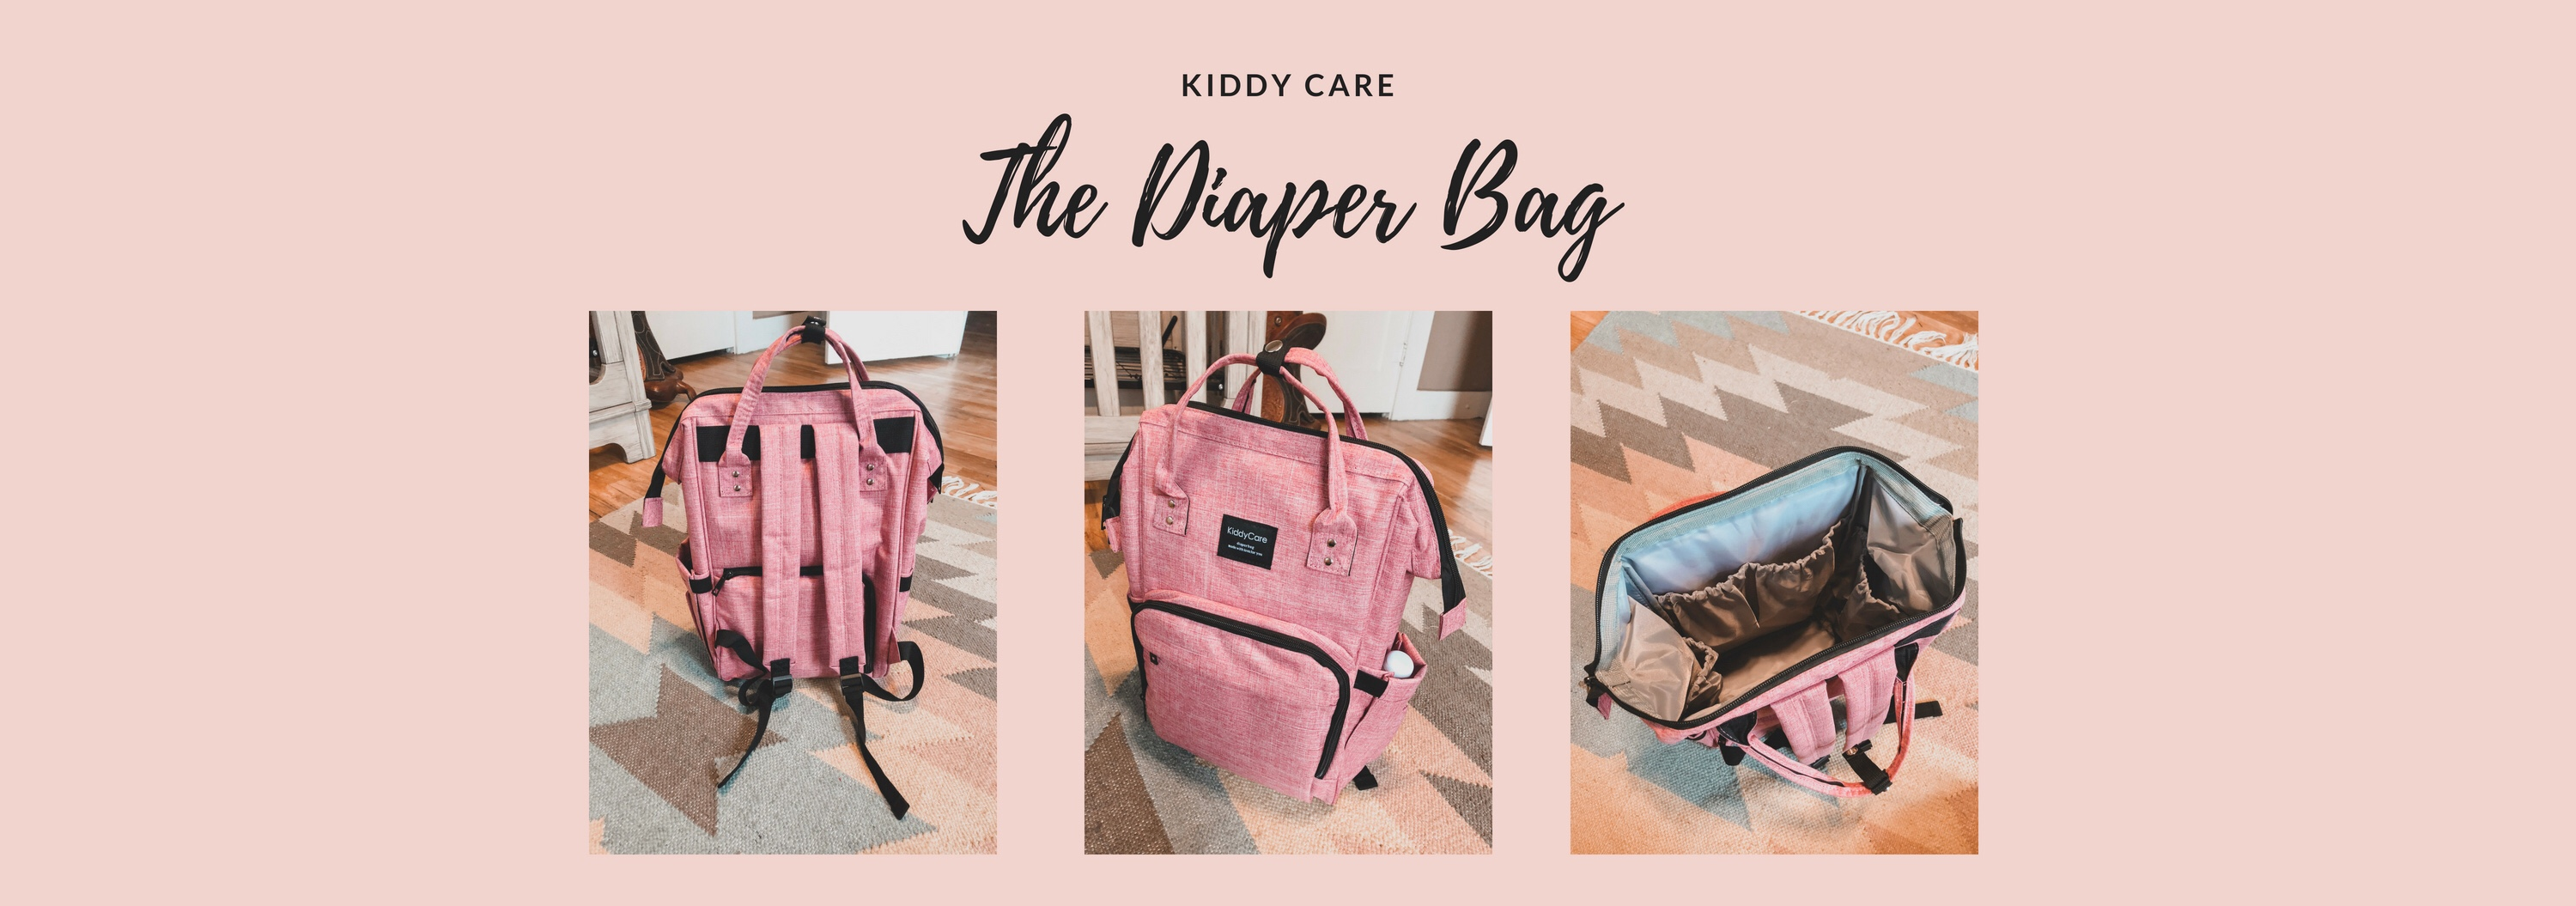 Kiddy Care: The Diaper Bag